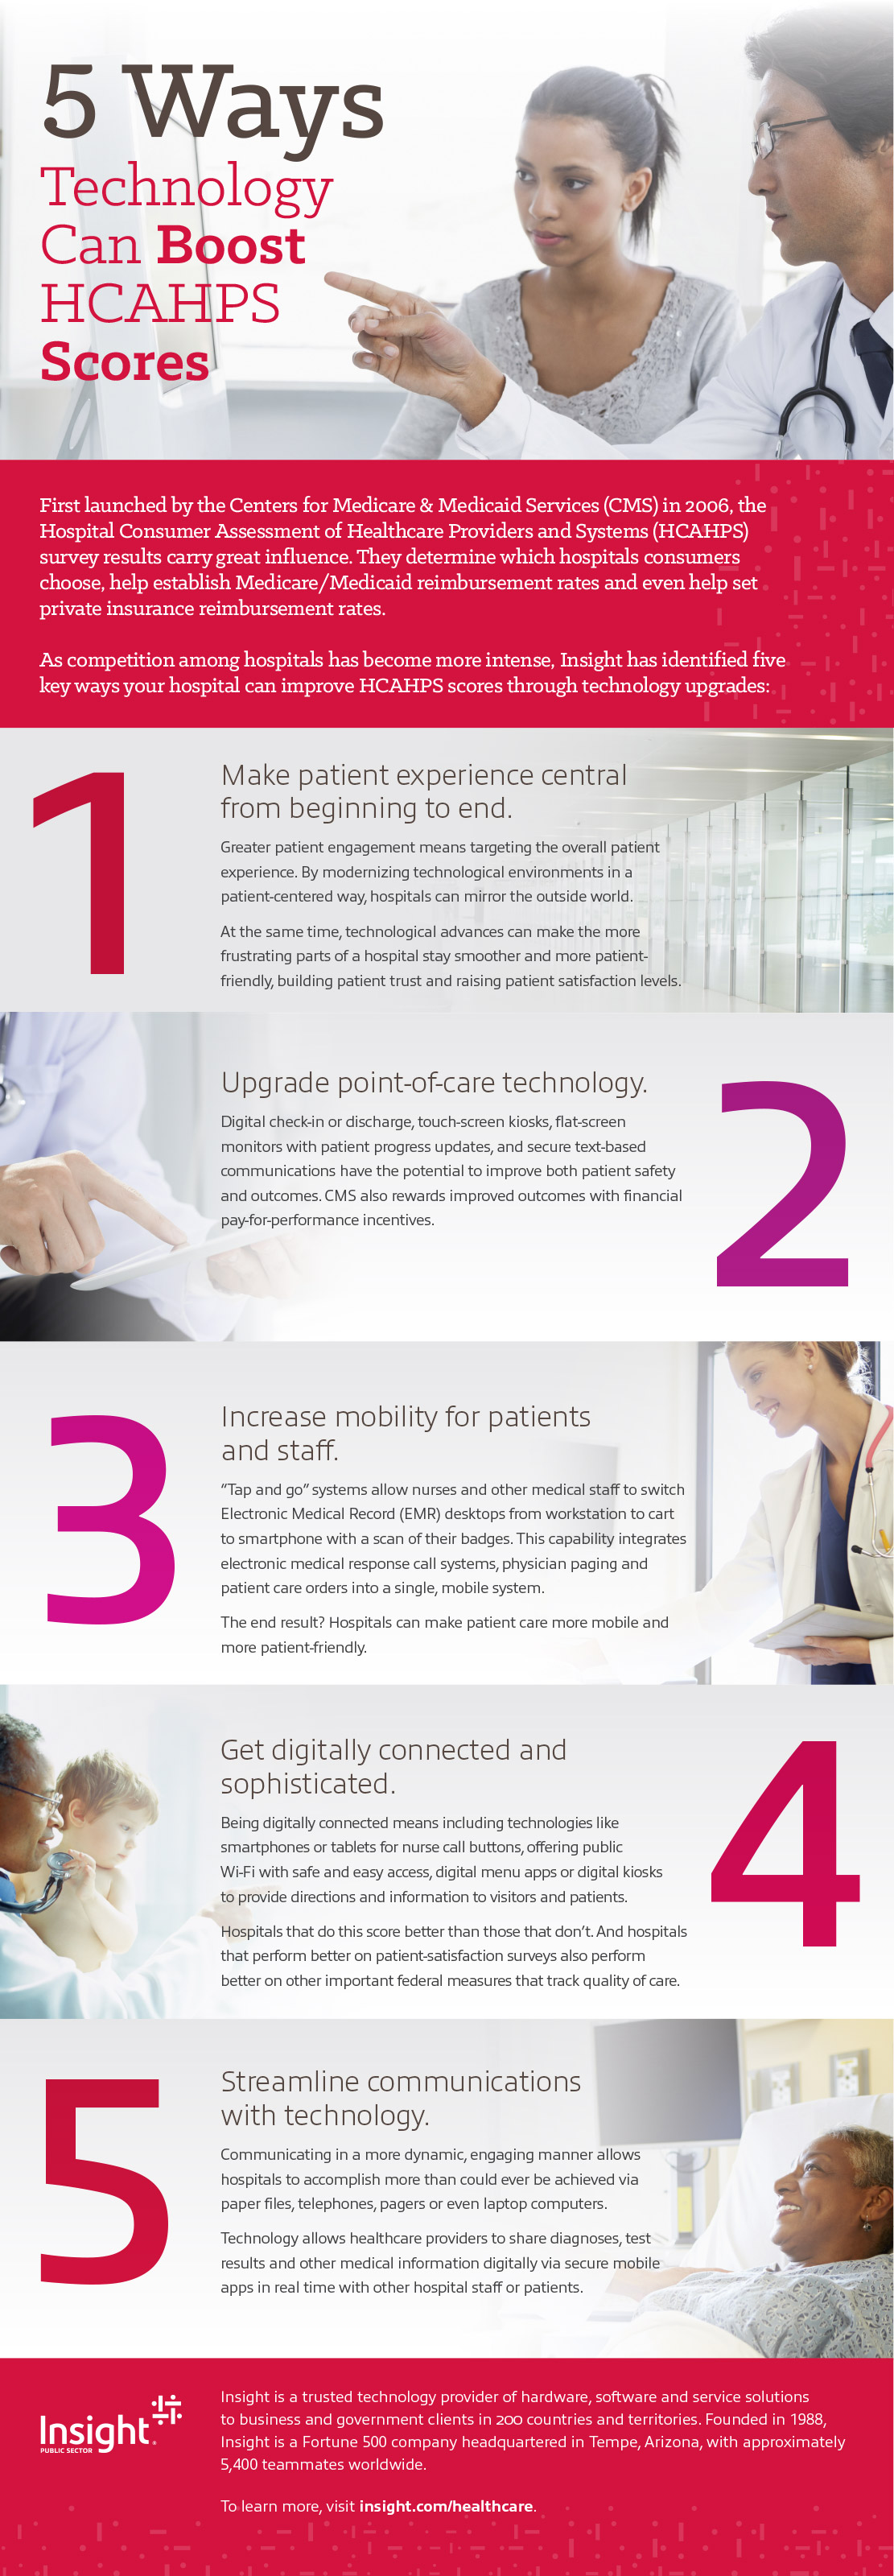 5 Ways Technology Can Boost HCAHPS Scores infographic